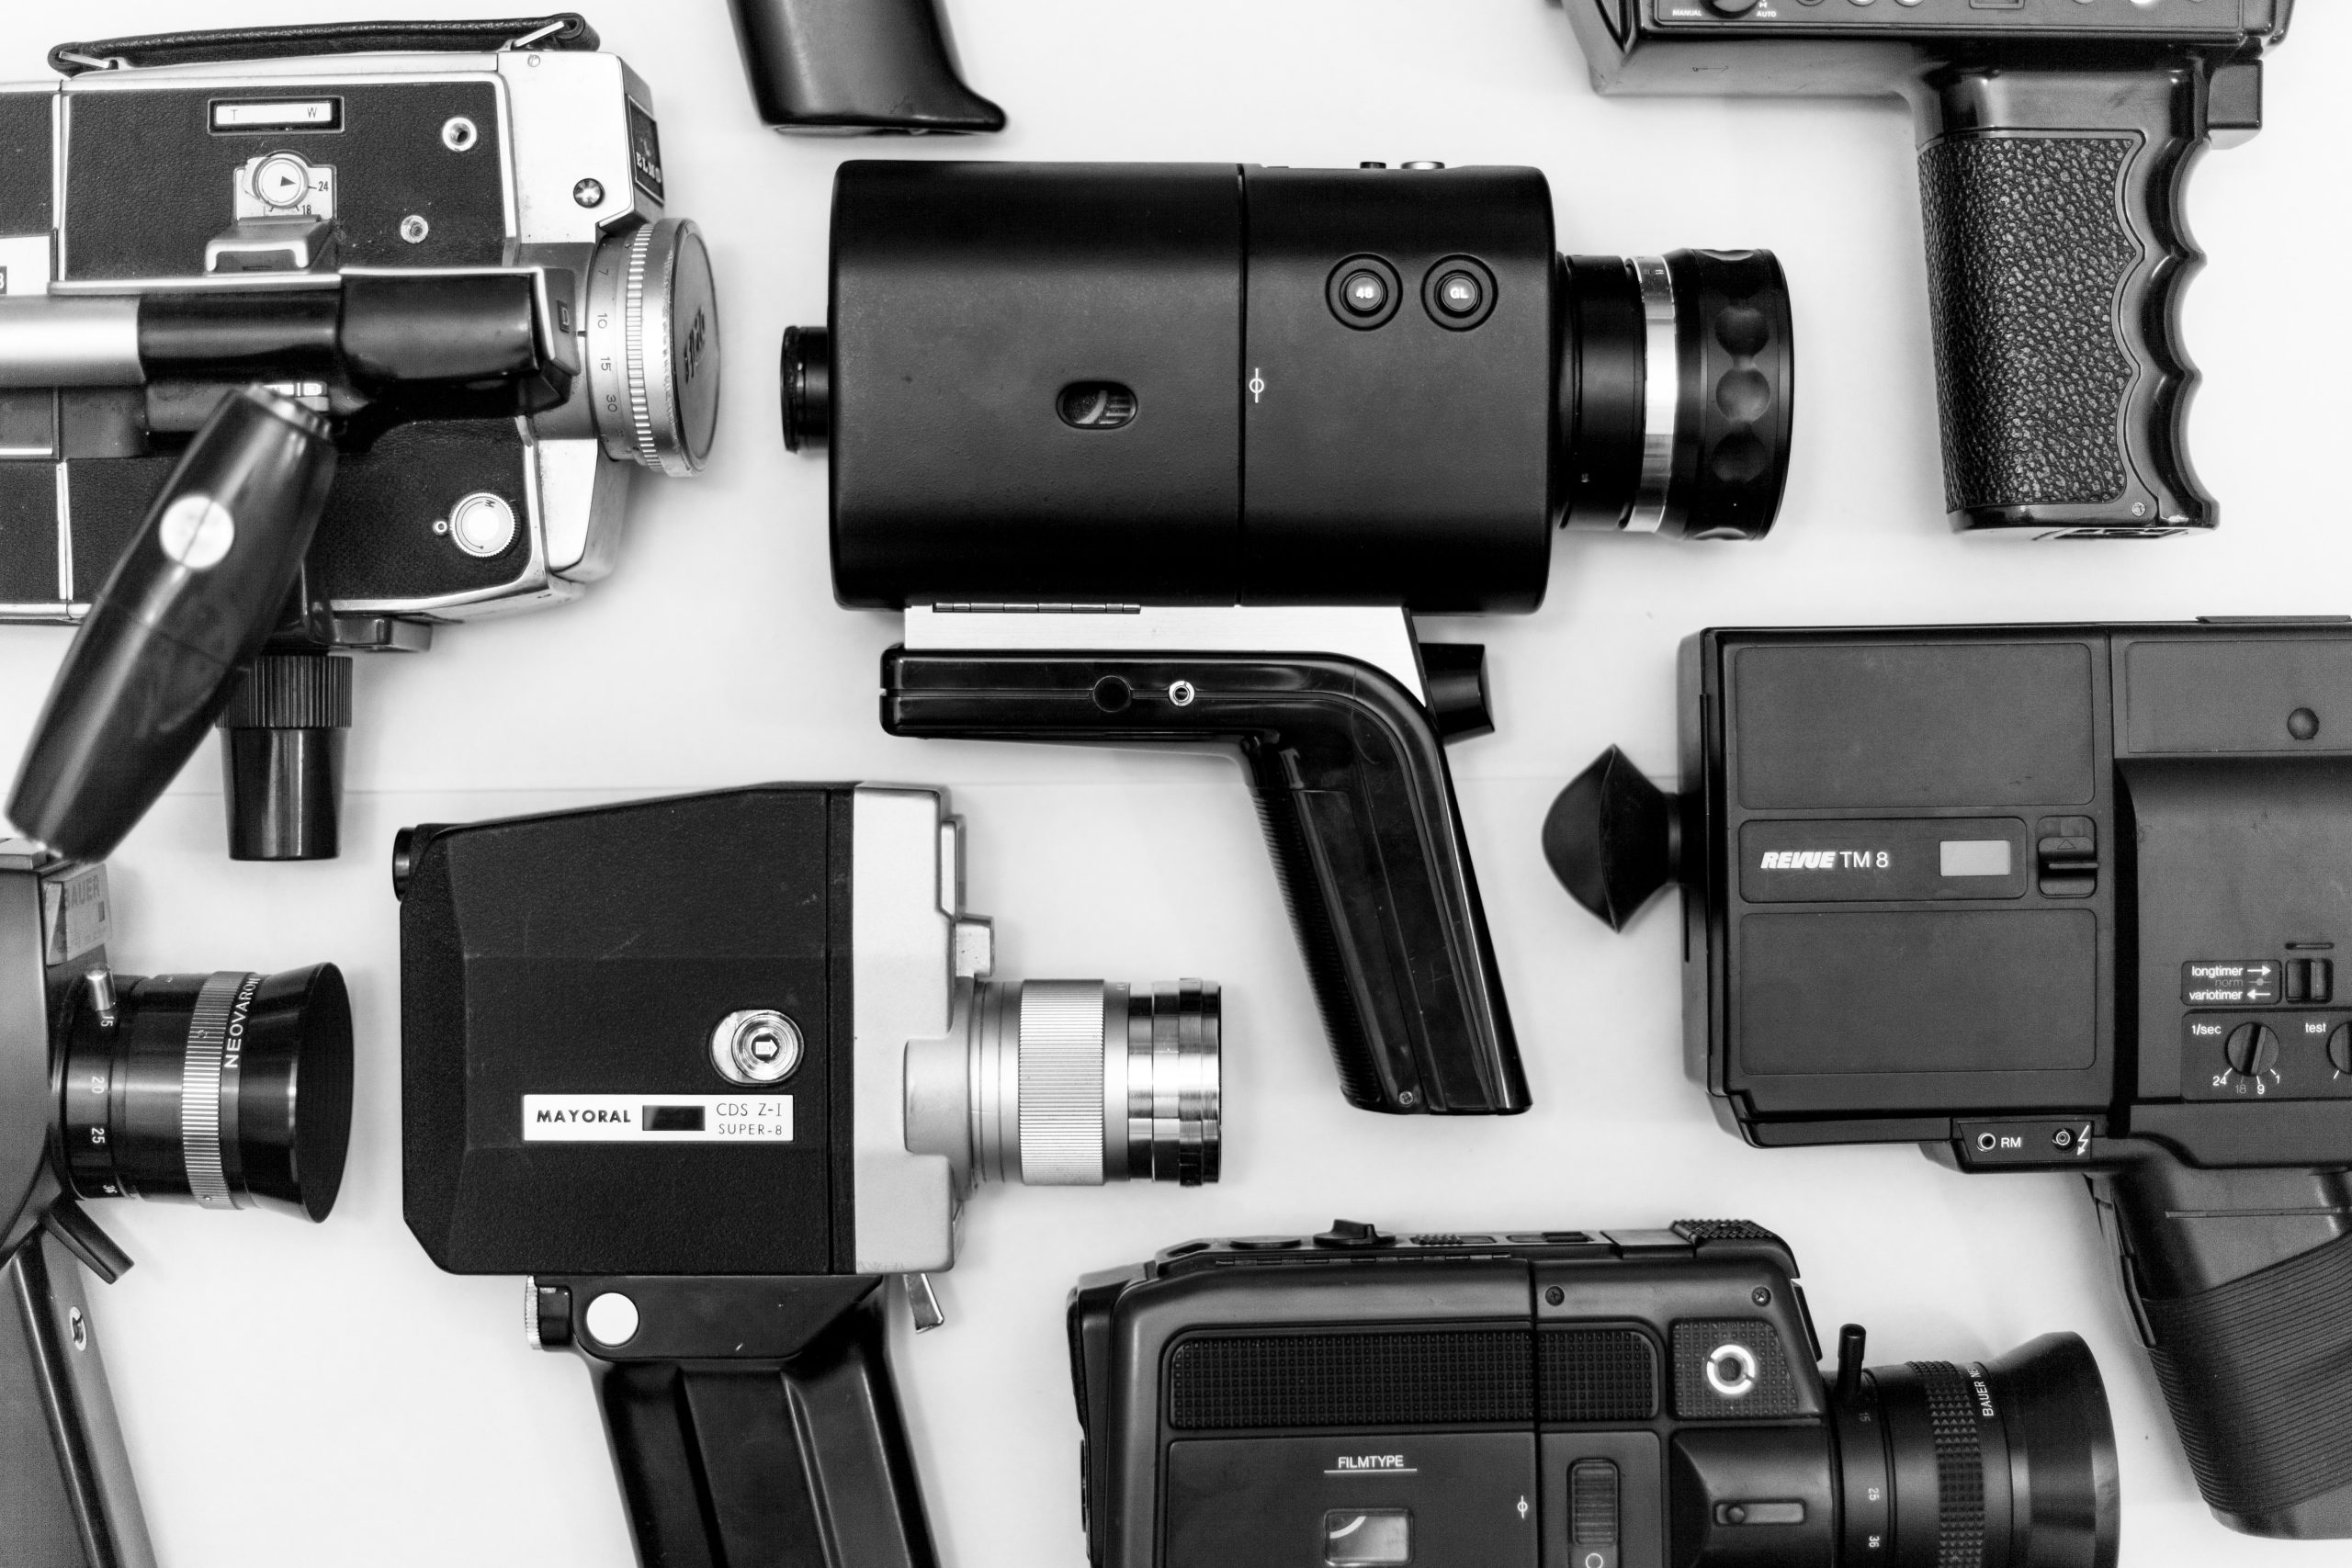 Lots of cameras in black and white as a reference to video conferencing.